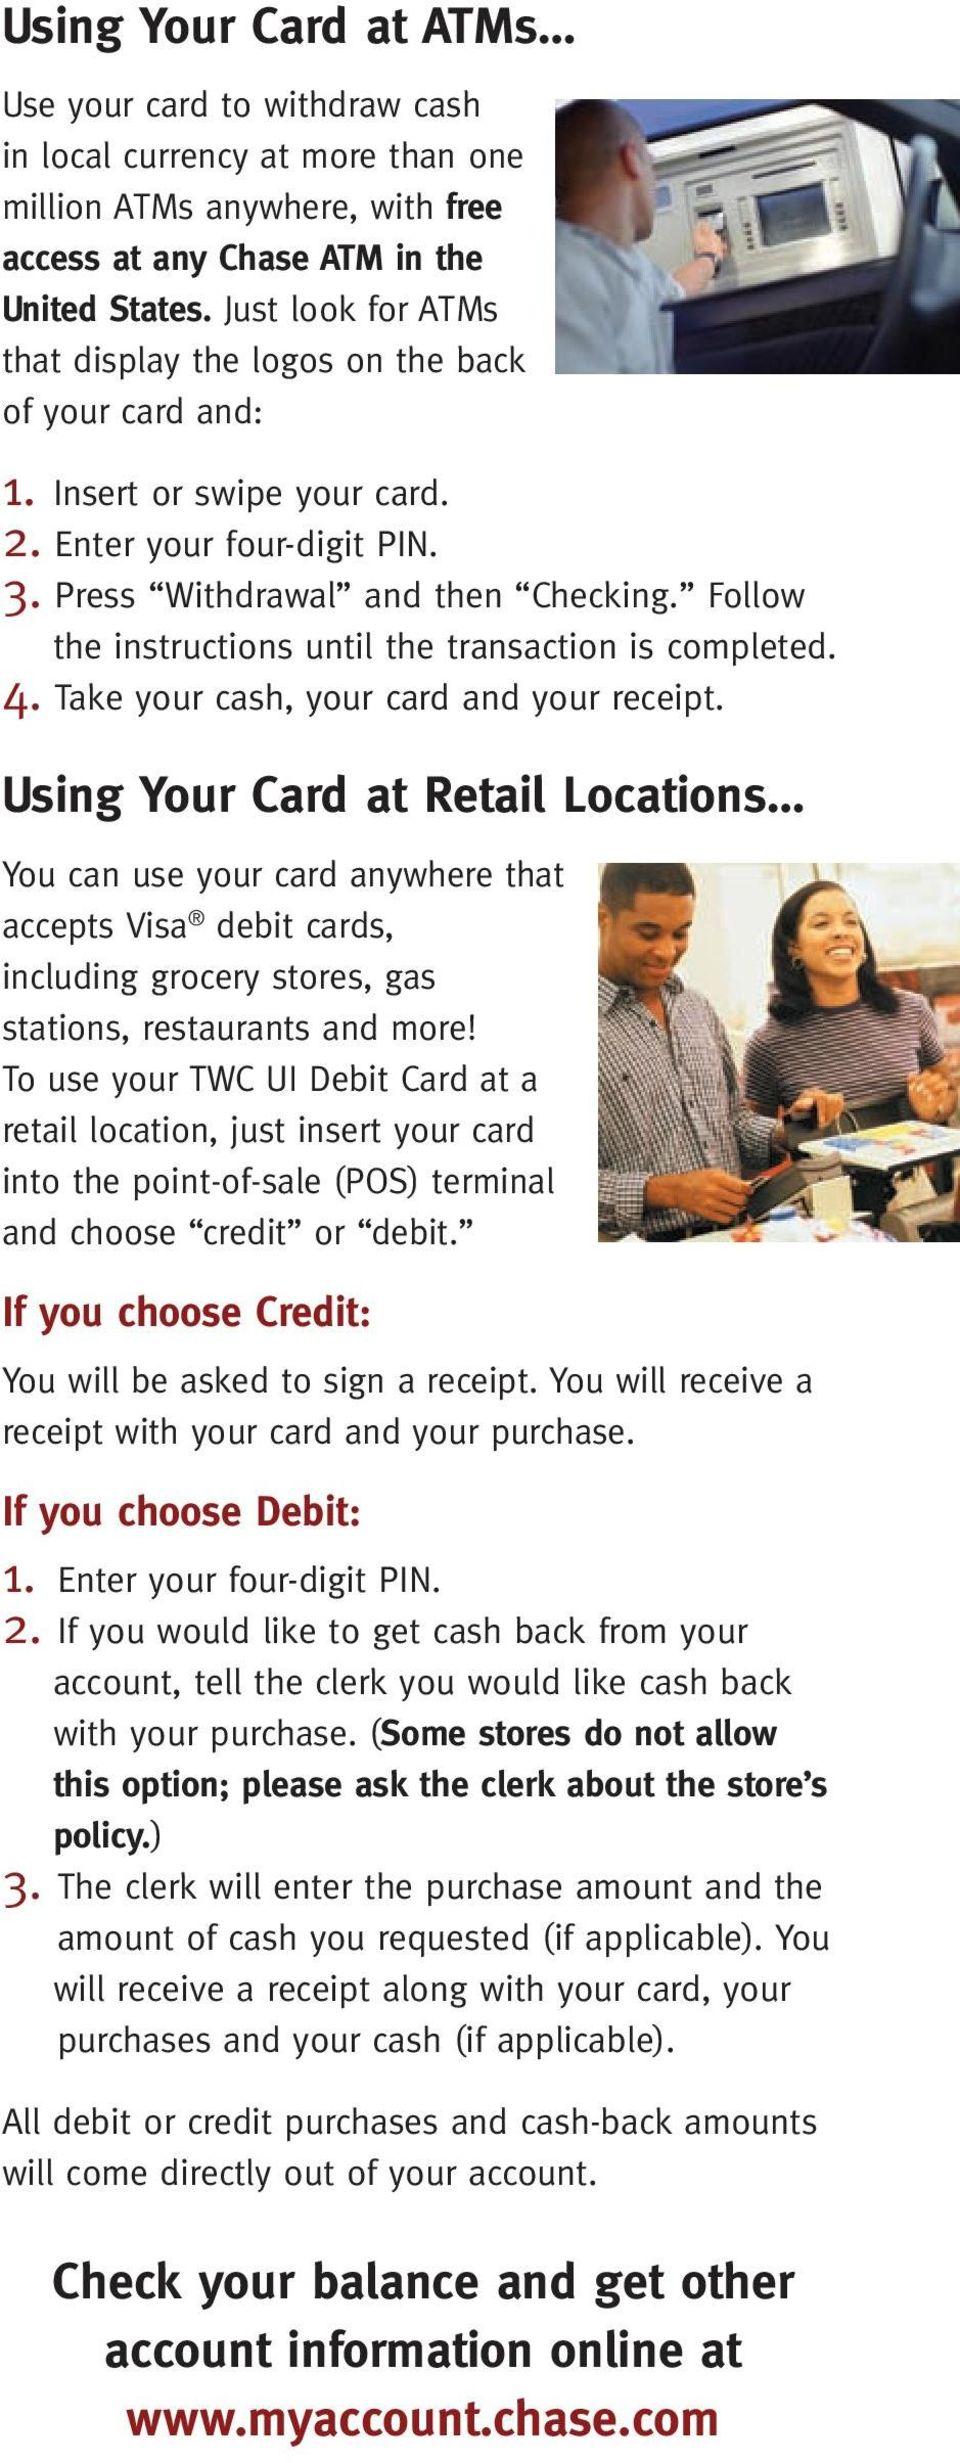 Follow the instructions until the transaction is completed. 4. Take your cash, your card and your receipt.